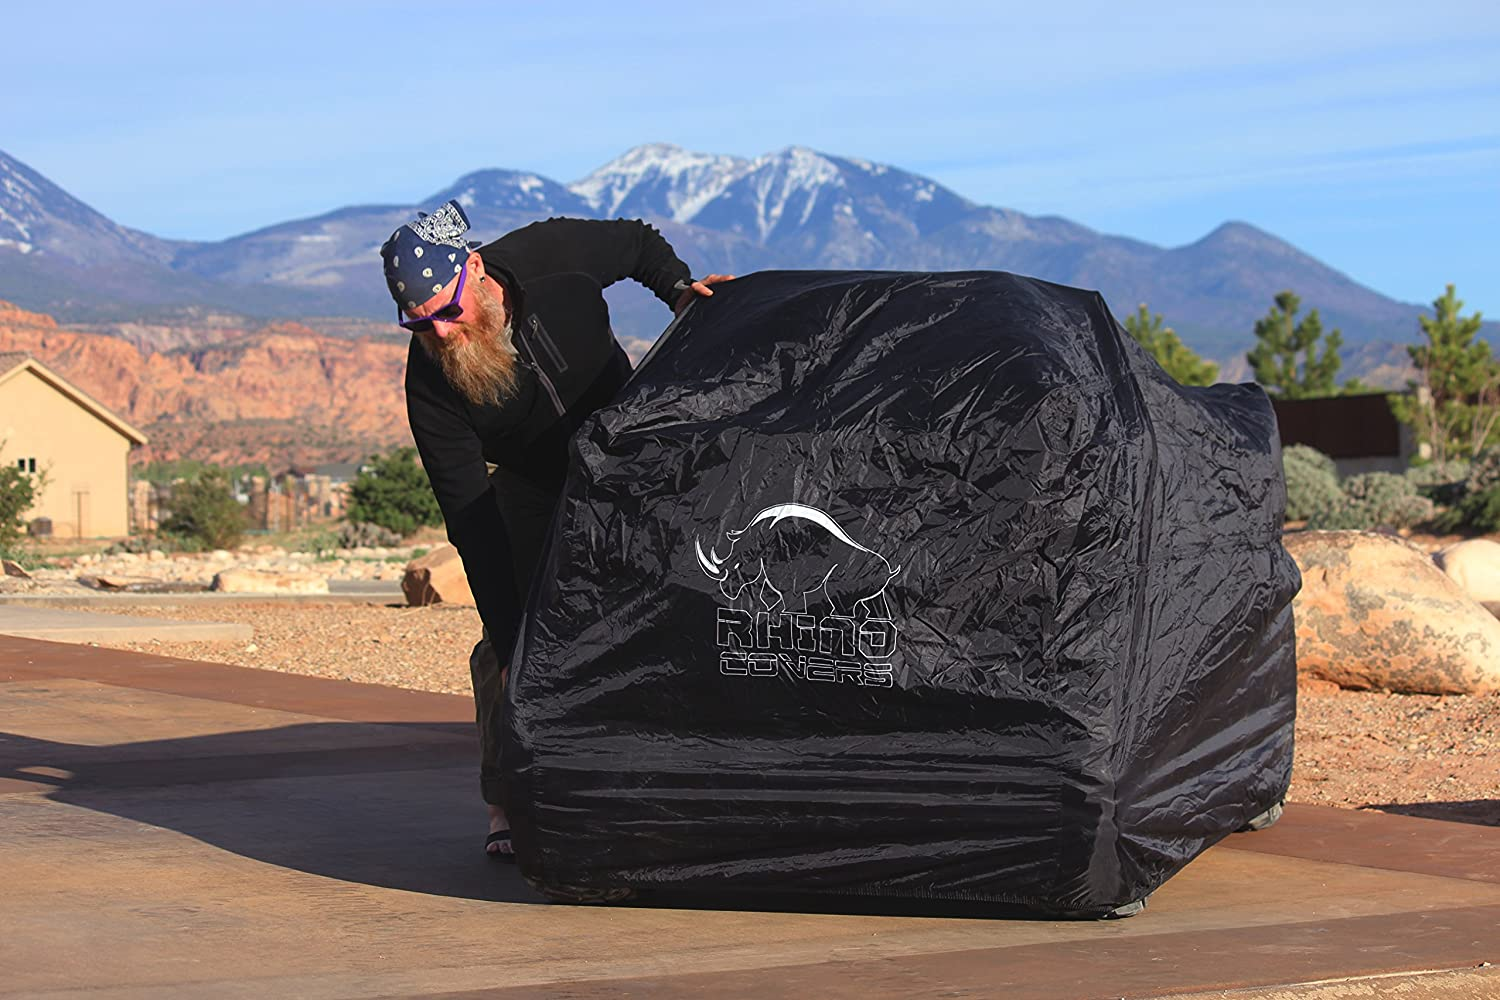 too WATERPROOF WINDPROOF 190T TAPED seams with WIND STRAPS Rhino 4 wheeler ATV Cover Works as LAWNMOWER cover See list of Quads for sizing in description Size LARGE